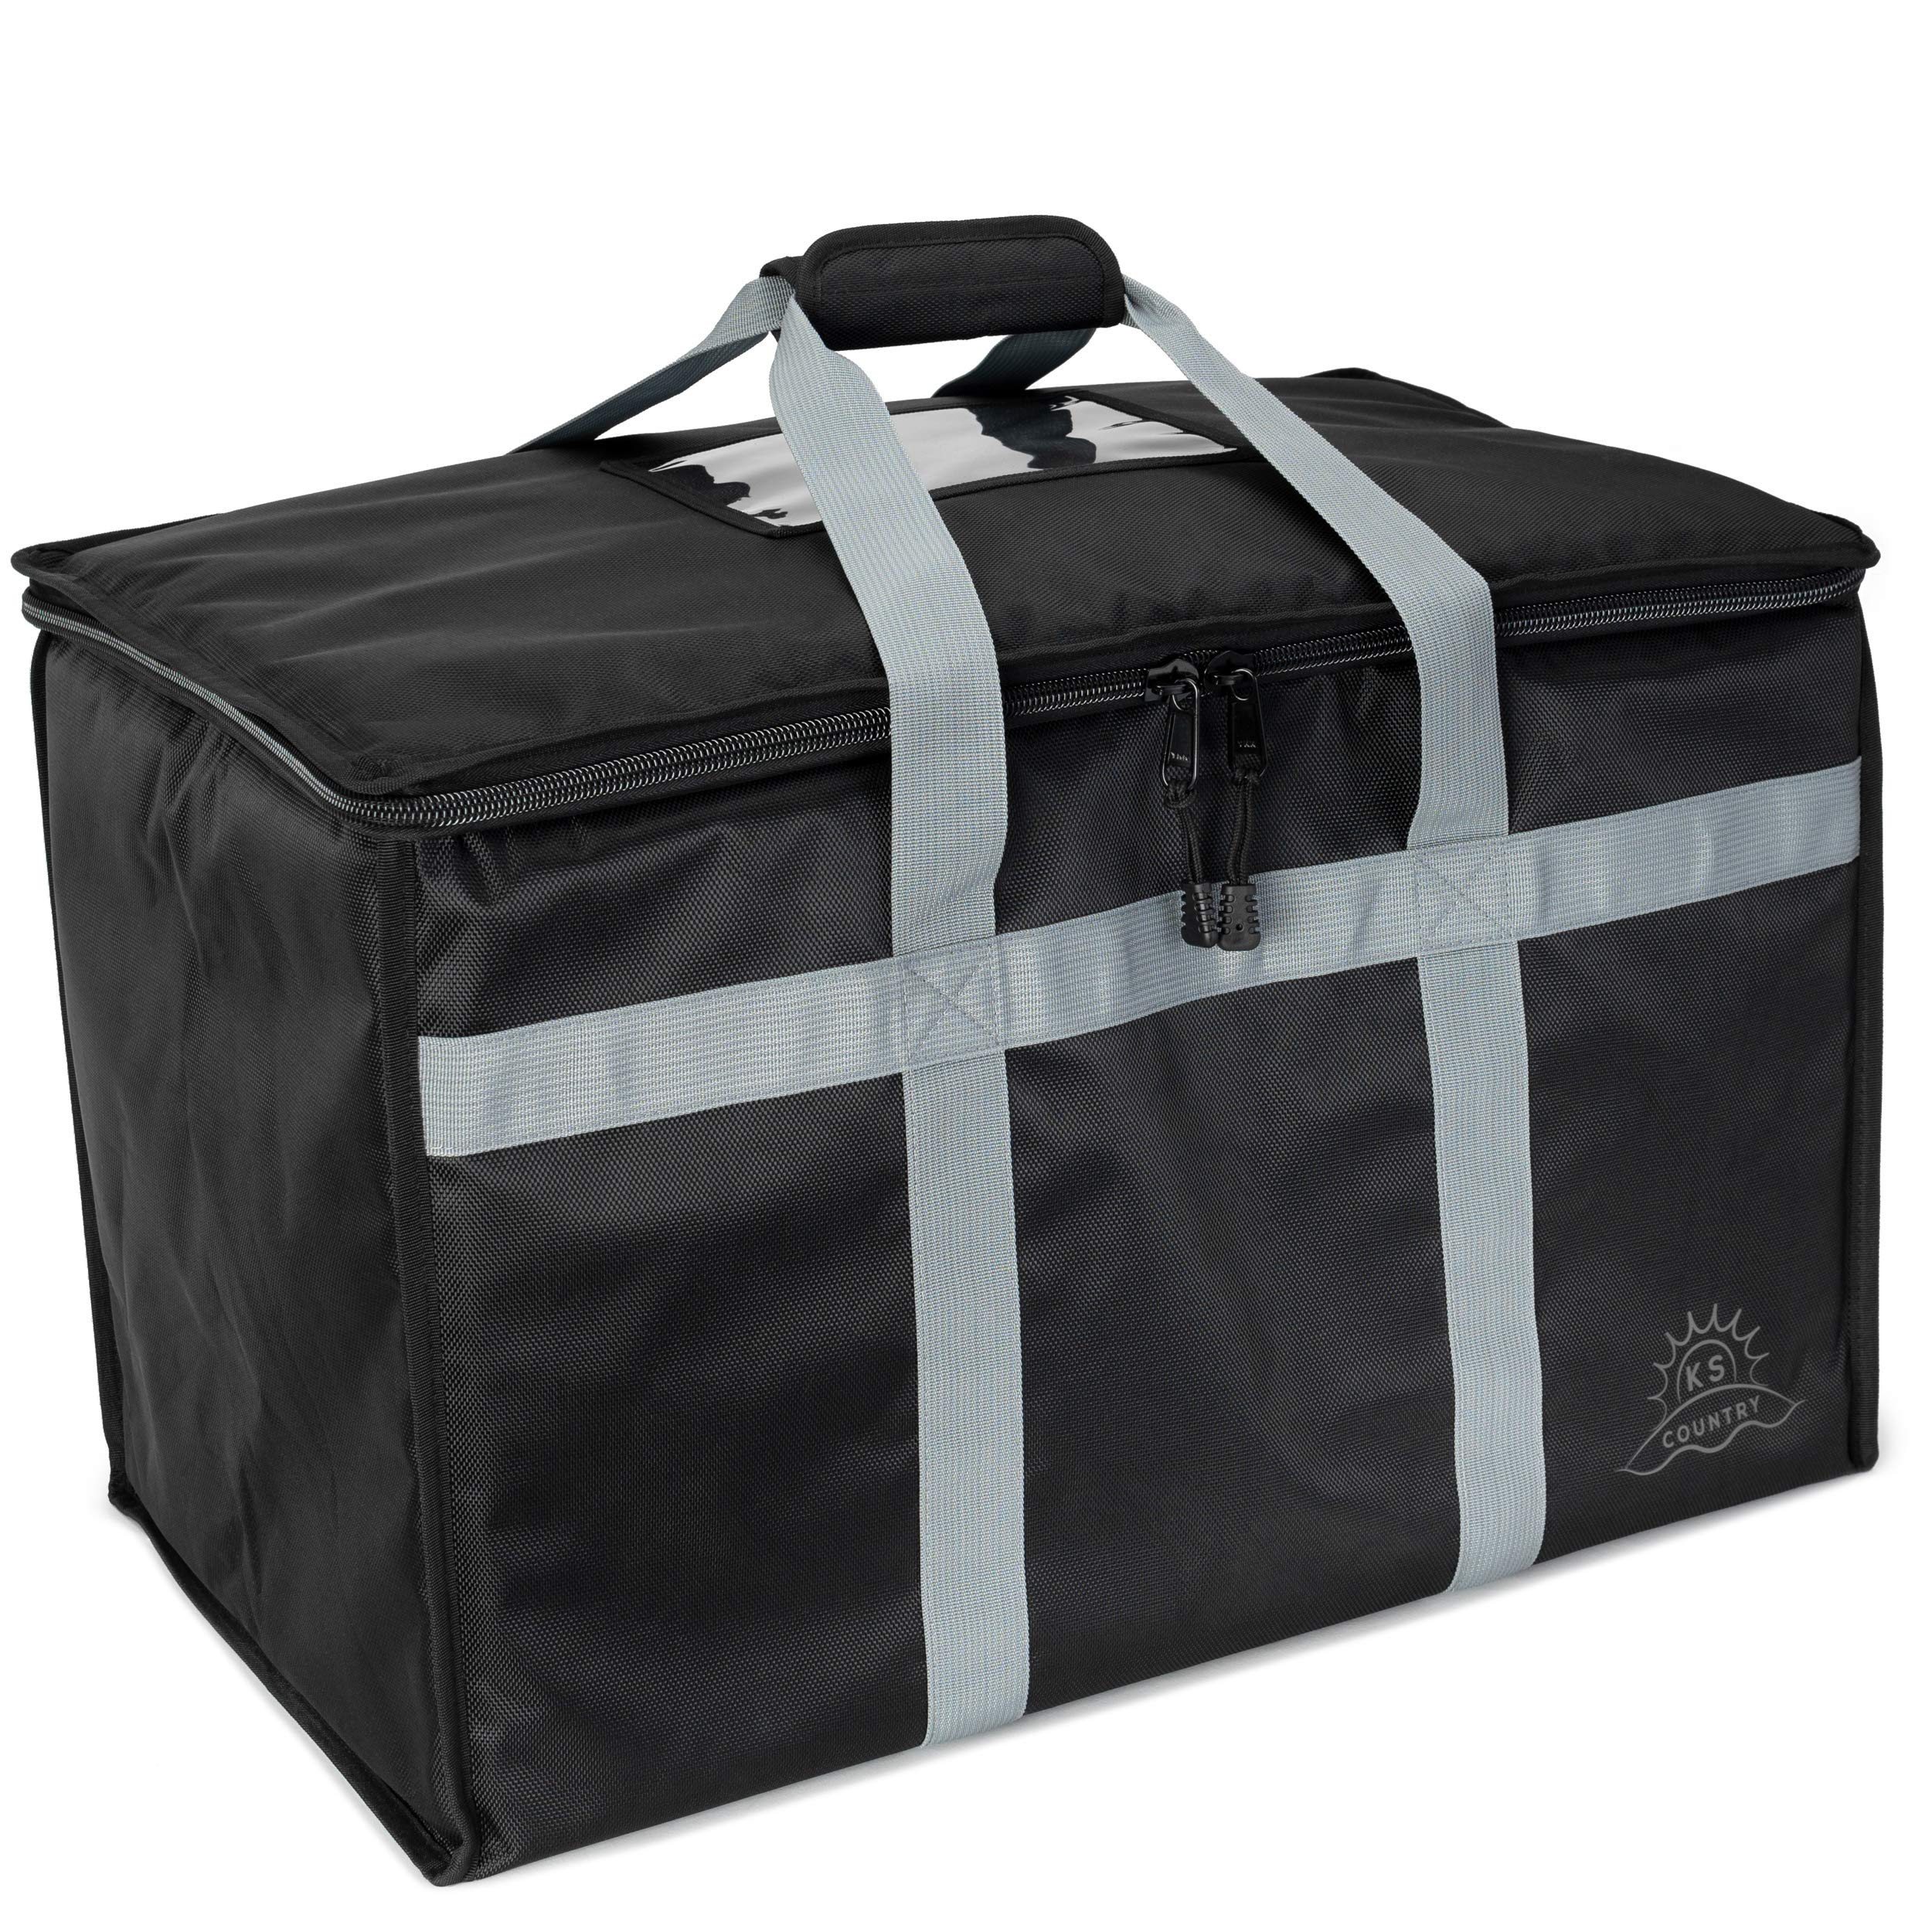 Commercial Insulated Food Delivery Bag by Ks Country - Reusable Grocery Carrier with Thermal Insulation to Keep Meals Hot or Cold - Heavy Duty Zipper - Extra Large and Collapsible Tote Box - Black by Ks Country